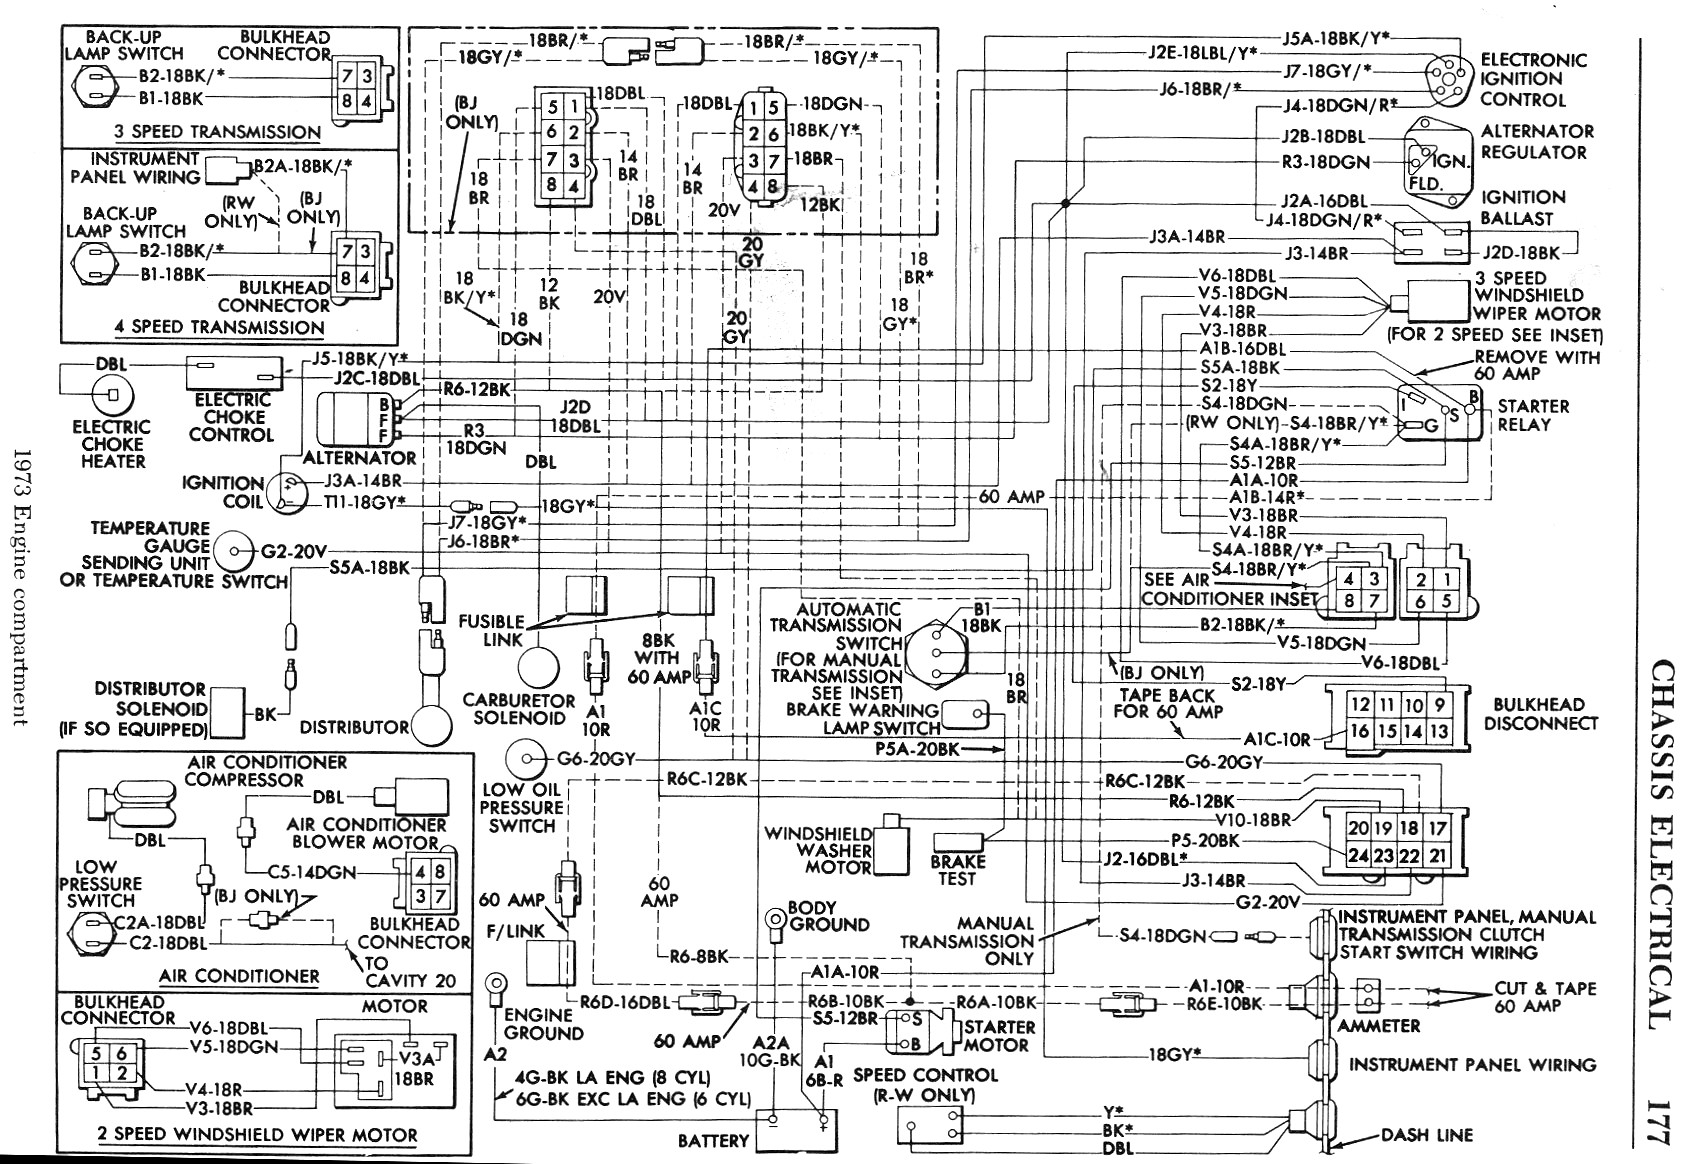 5098823 73B BodyEngineCompartmentWiringDiagram need 1973 duster wiring diagrams please! moparts question and 70 cuda wiring diagram at fashall.co